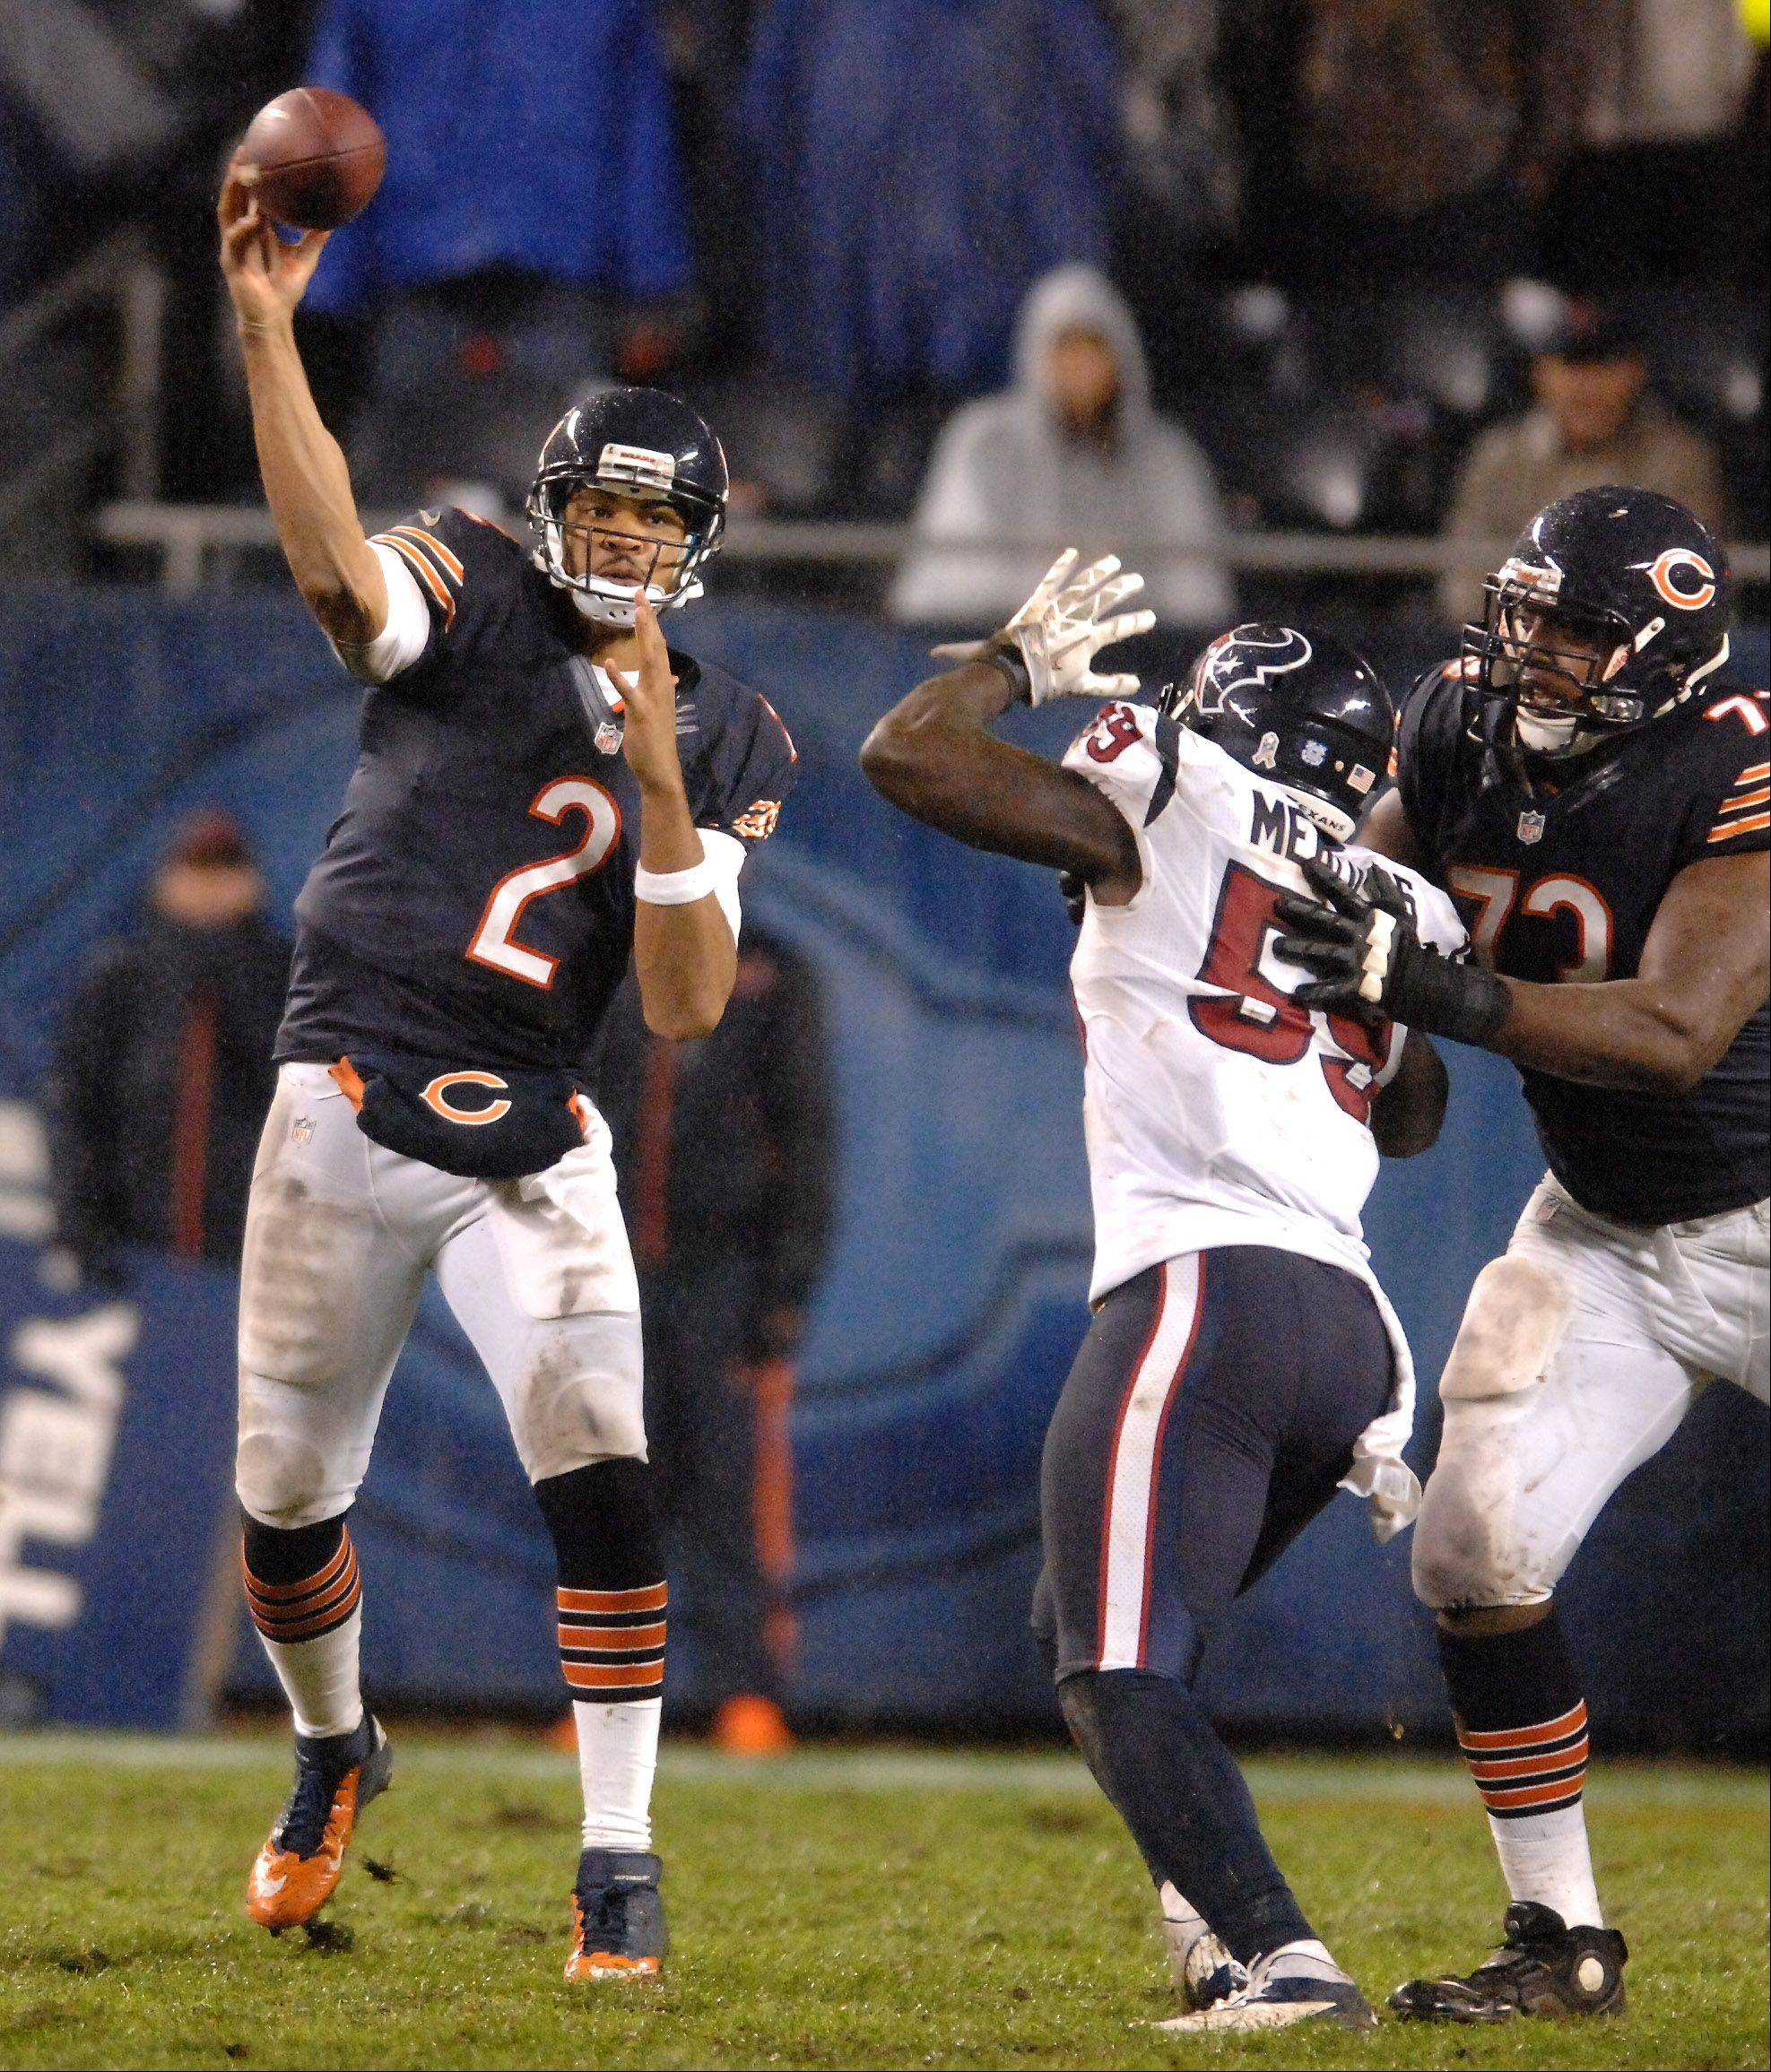 Chicago Bears quarterback Jason Campbell (2) throws a pass after relieving an injured Jay Cutler during Sunday's game.